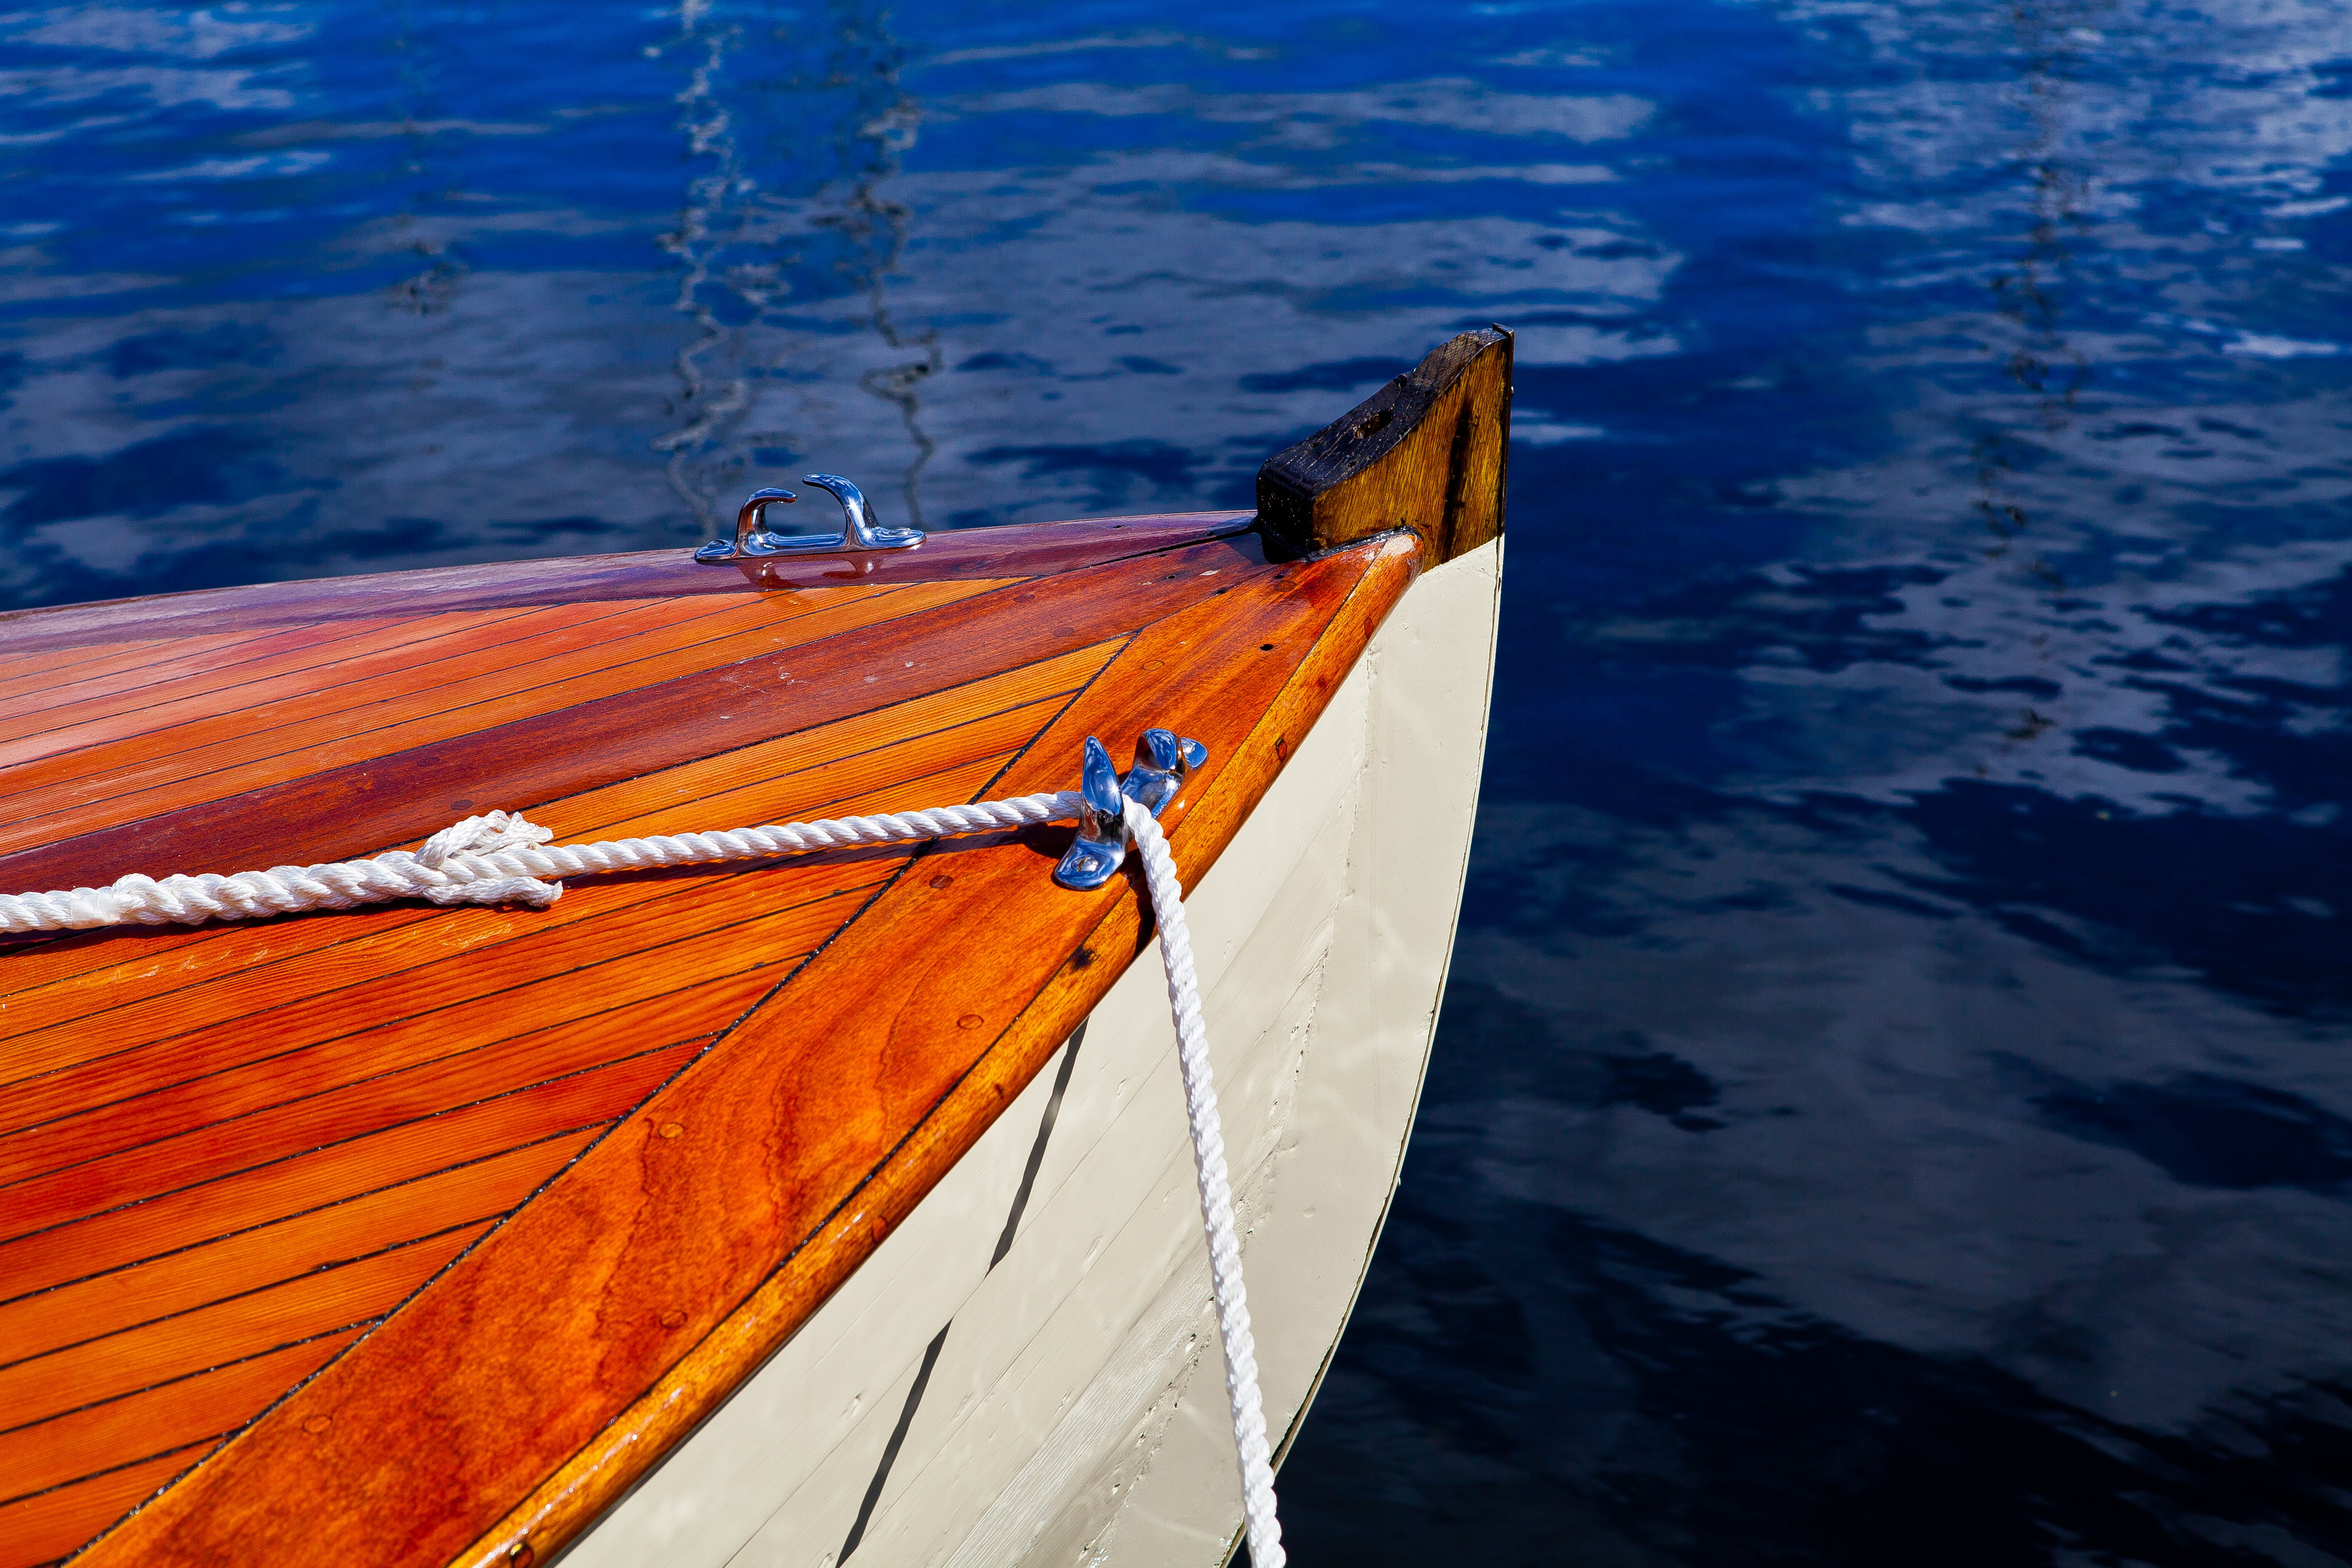 Brown and White Boat on Body of Water